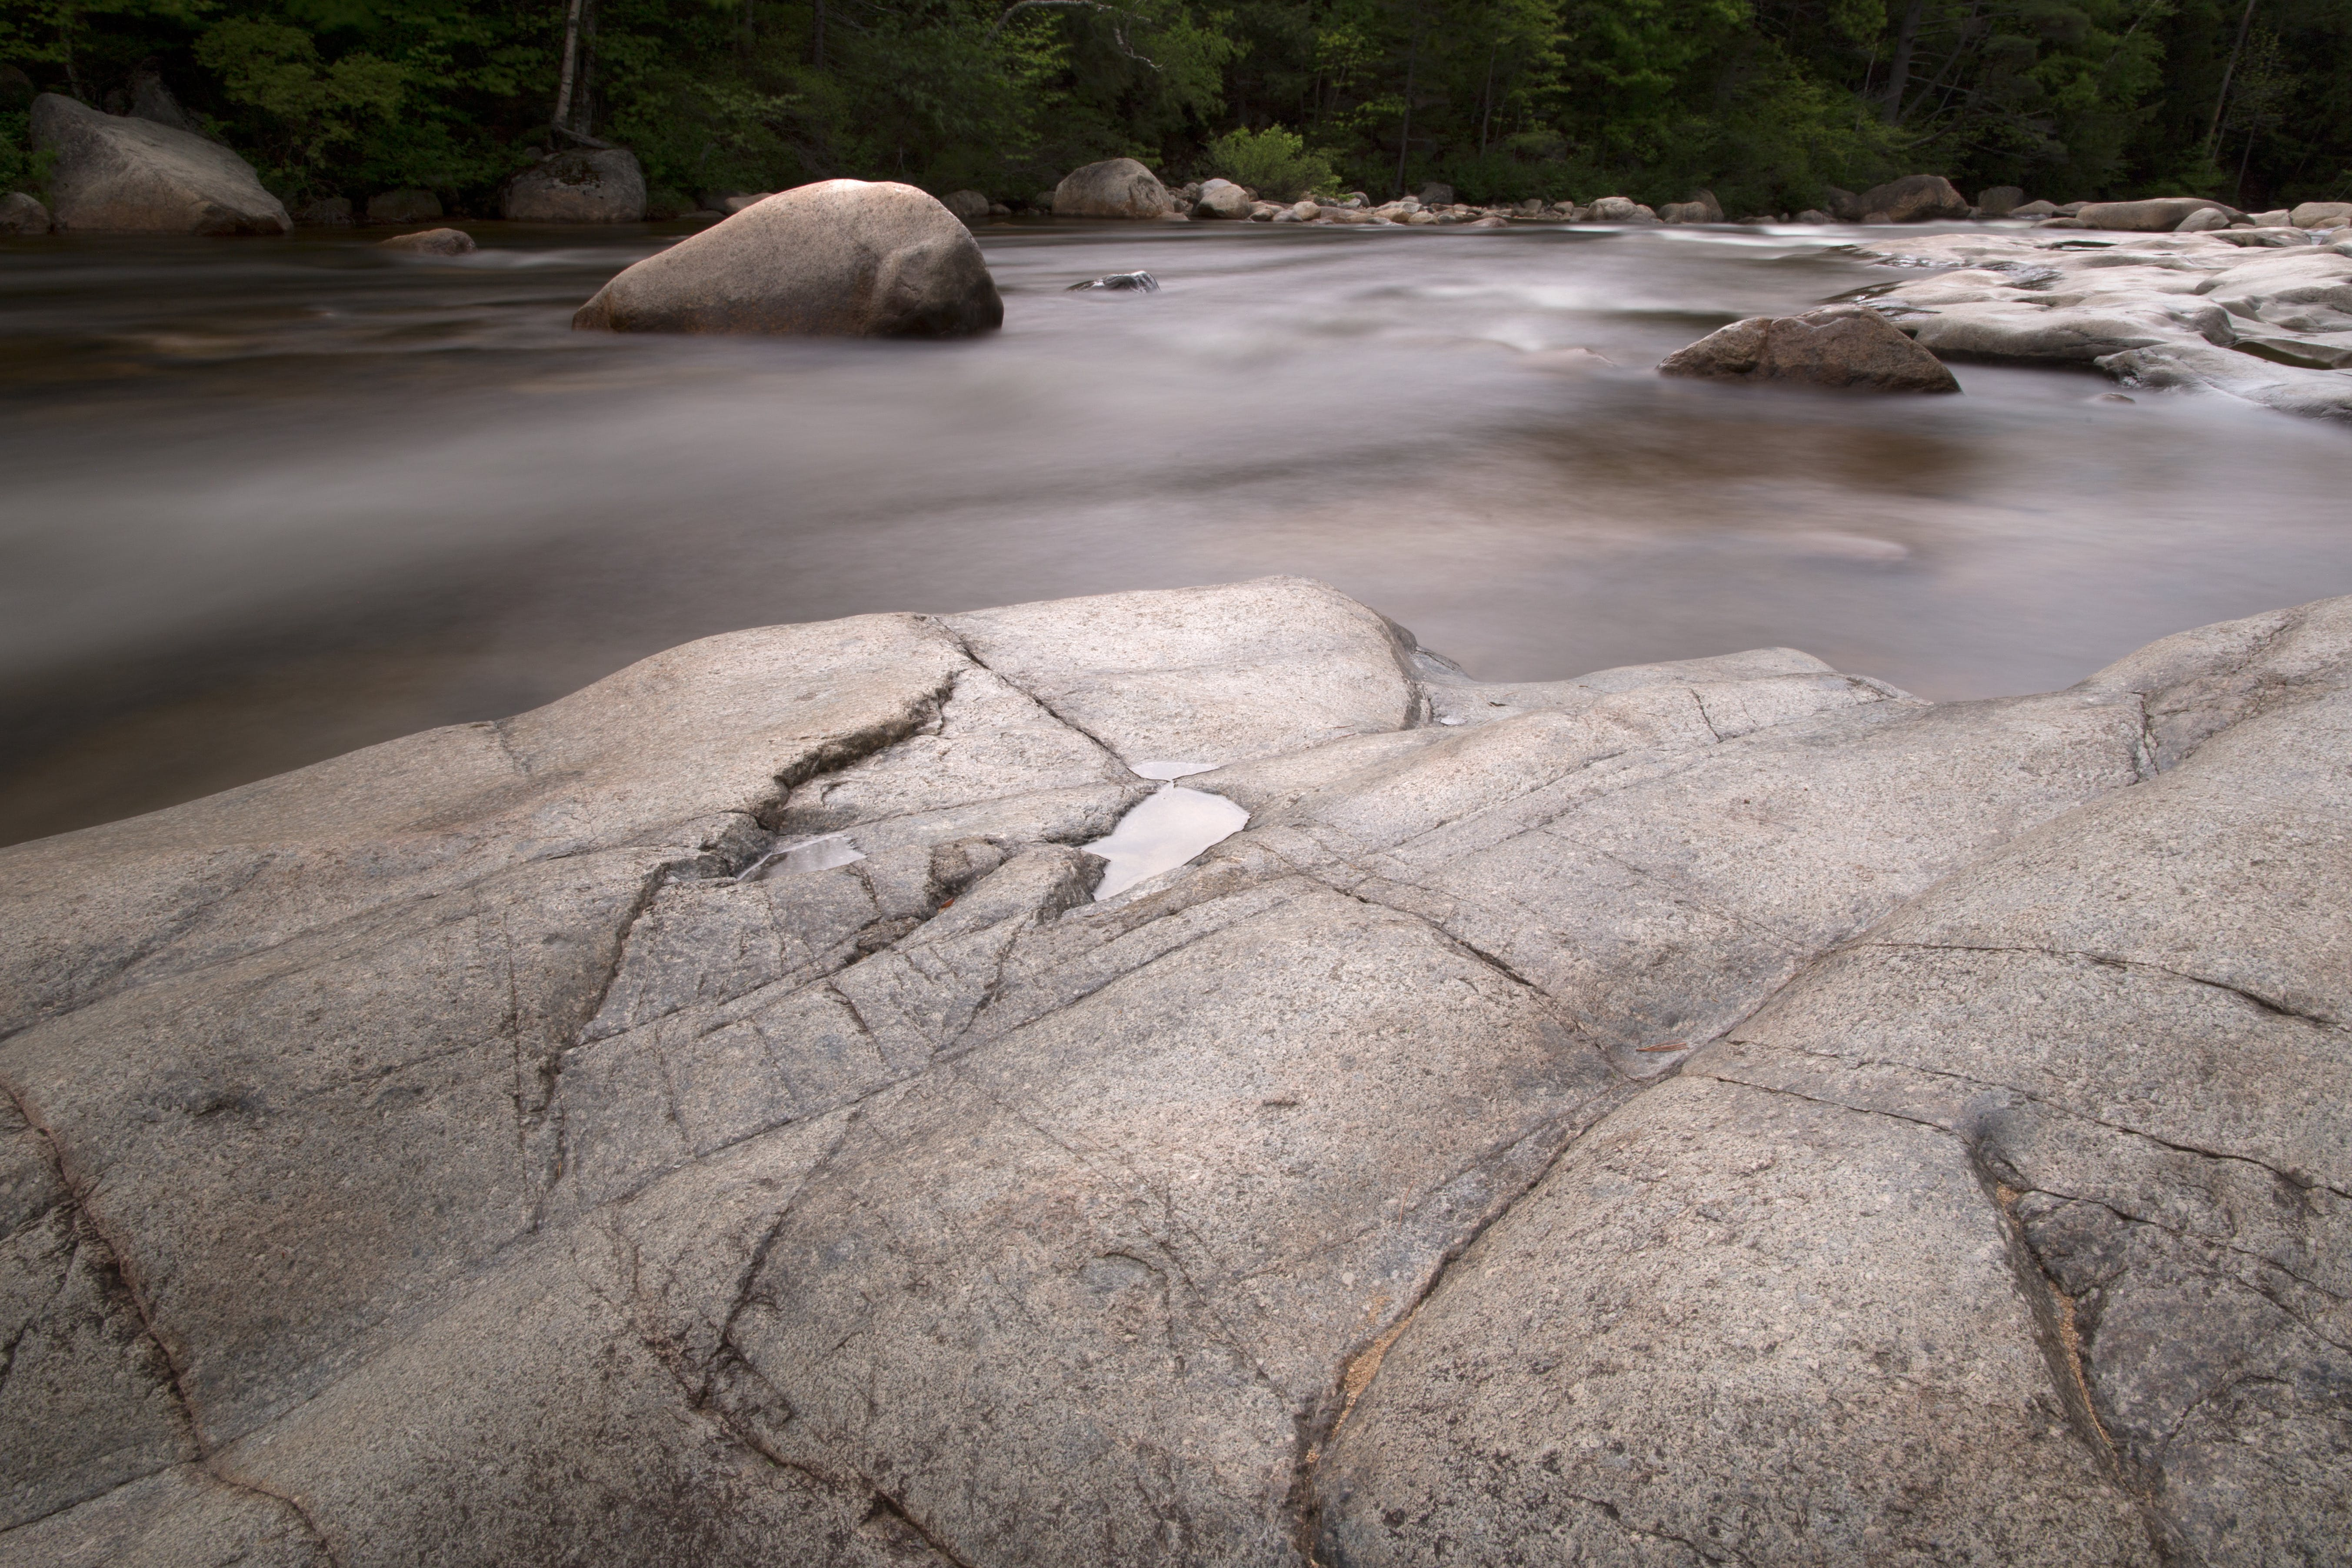 Photography of Rock Formation on Body of Water